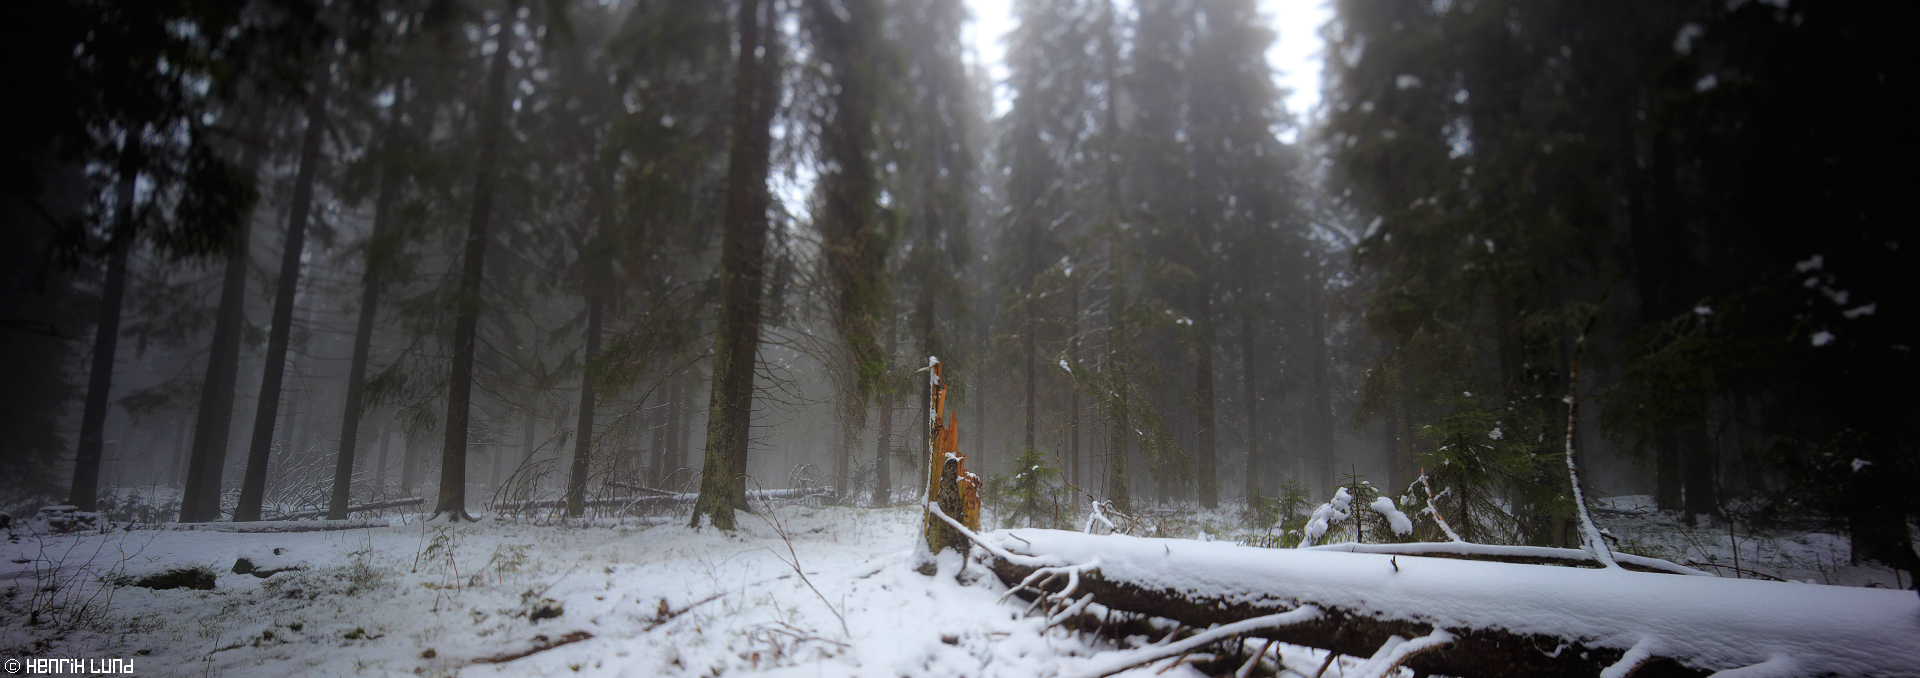 Panoramic forest with first snow from Puijo Nature conservatin forest. November 2015.